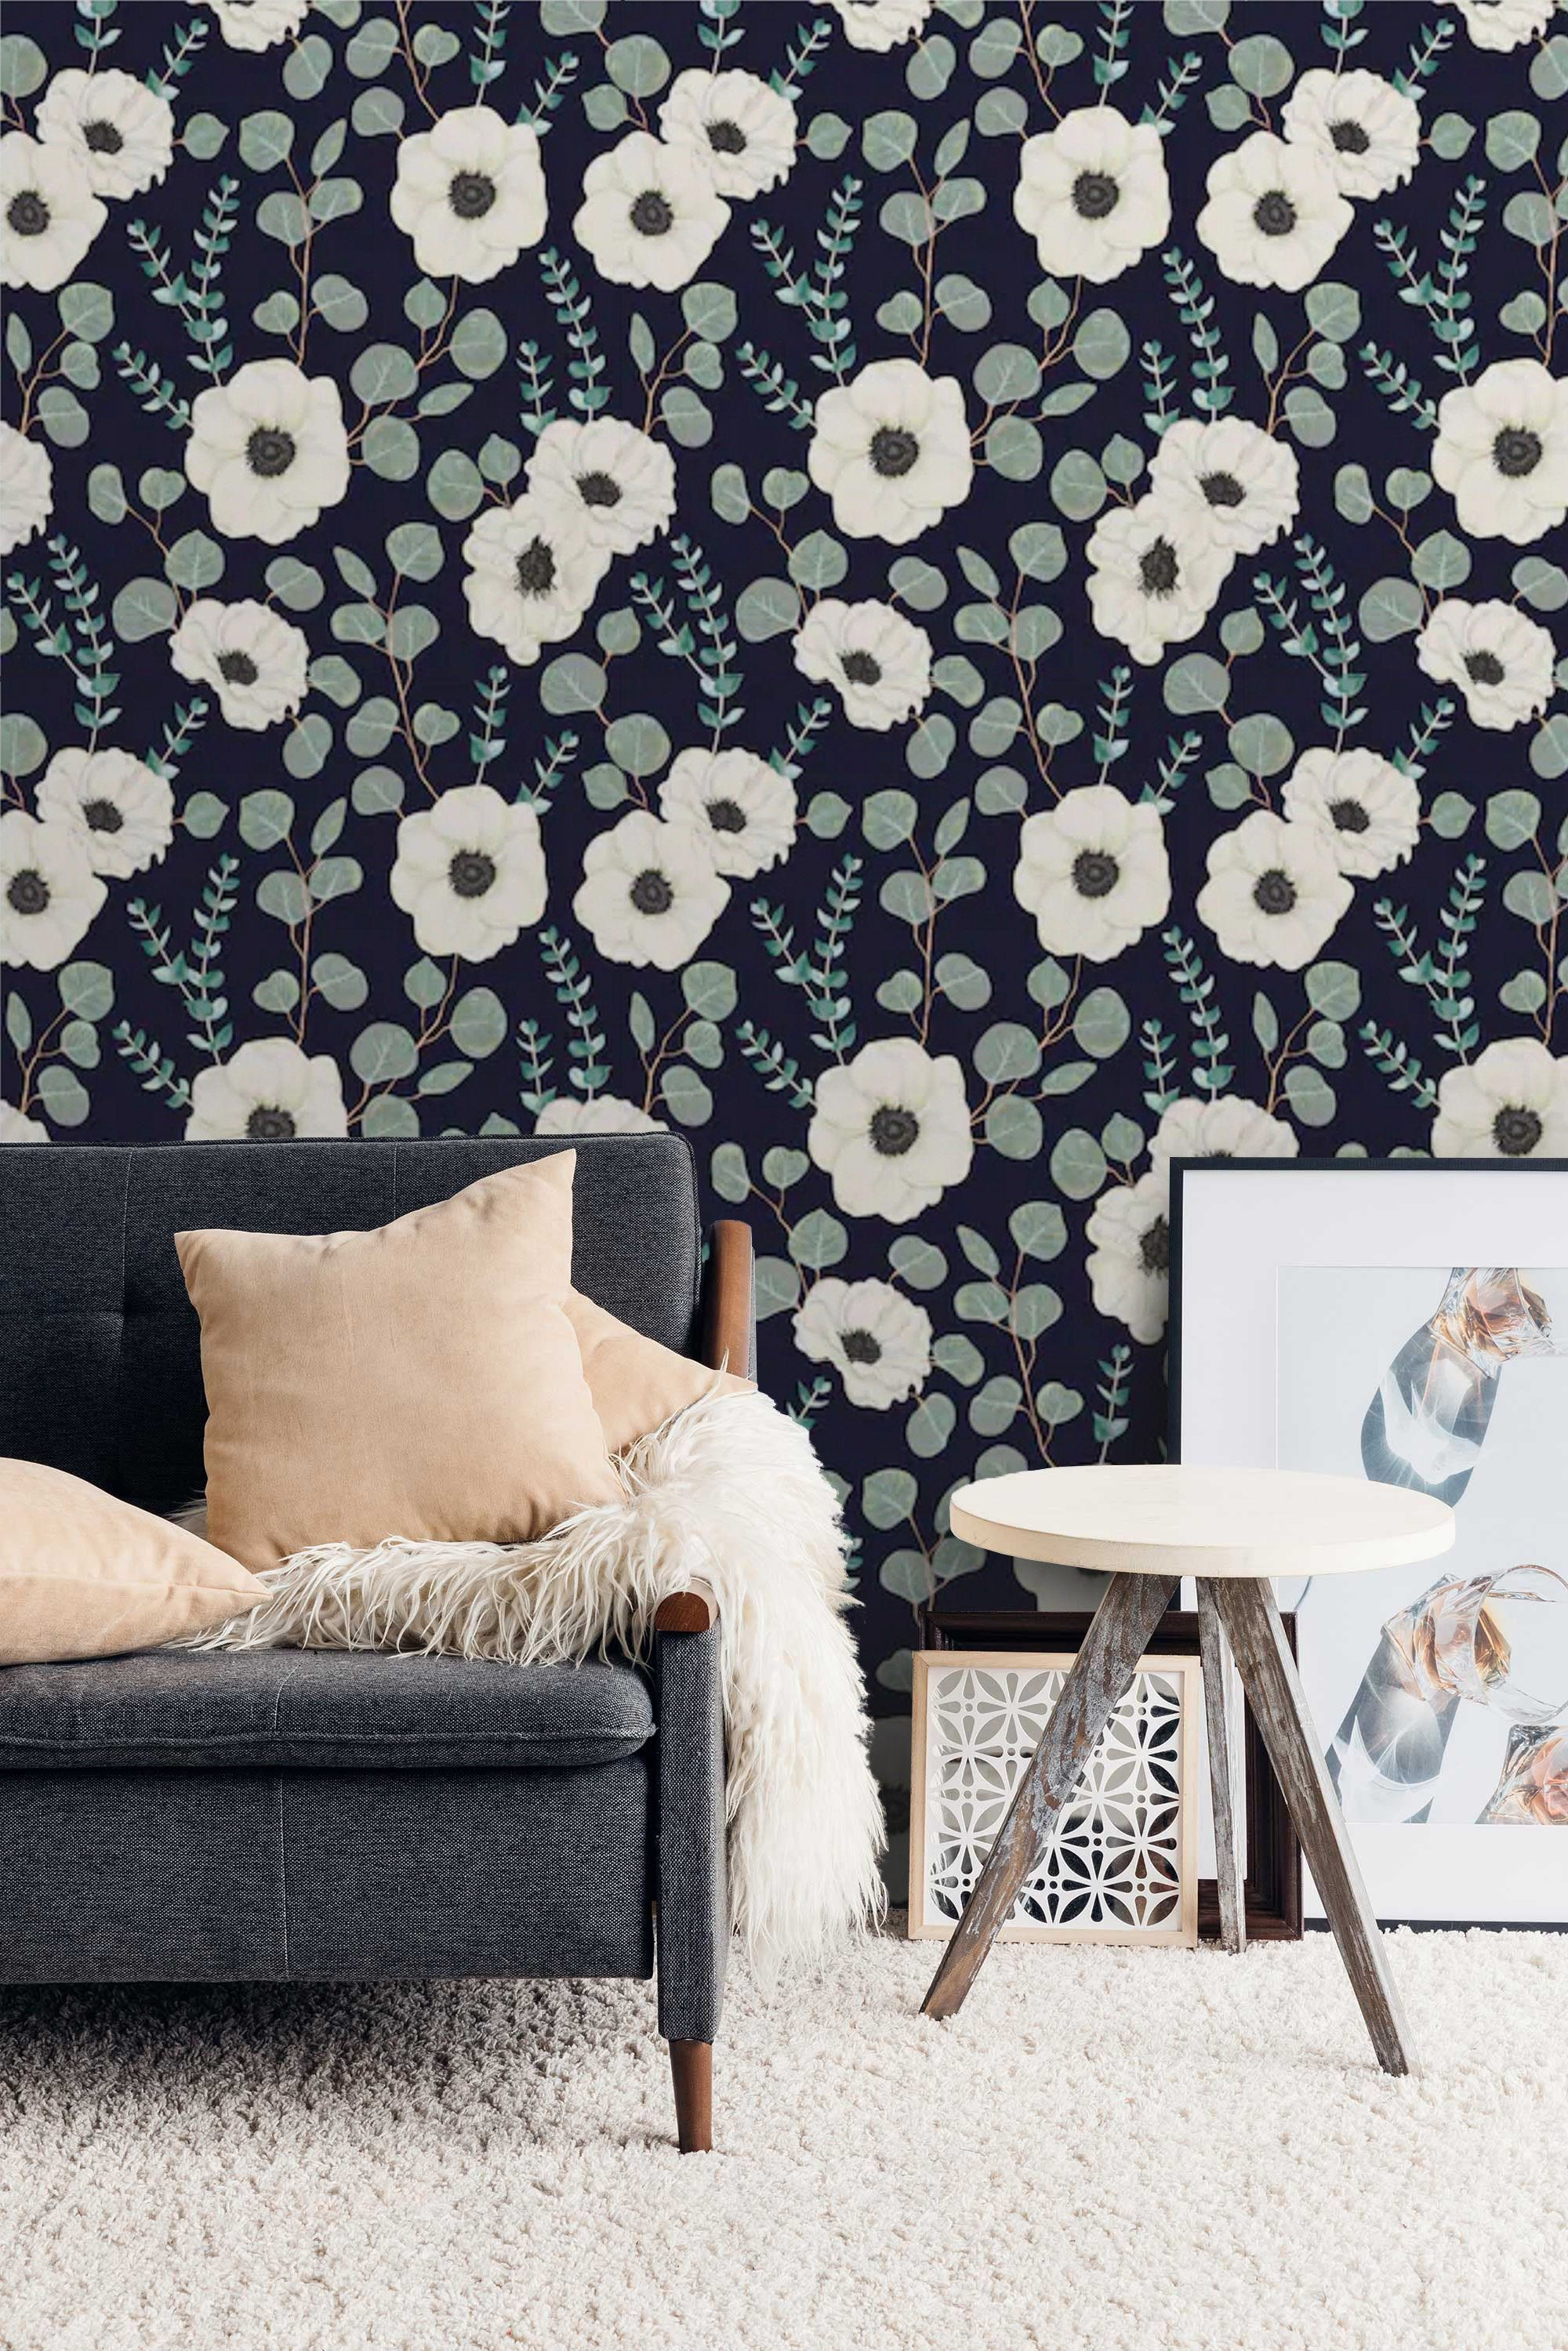 Floral Accent Wall Removable Dark Floral Wallpaper Mural Peel And Stick Wallpaper Anemone White Flowers Self Floral Wallpaper Mural Wallpaper Custom Wallpaper